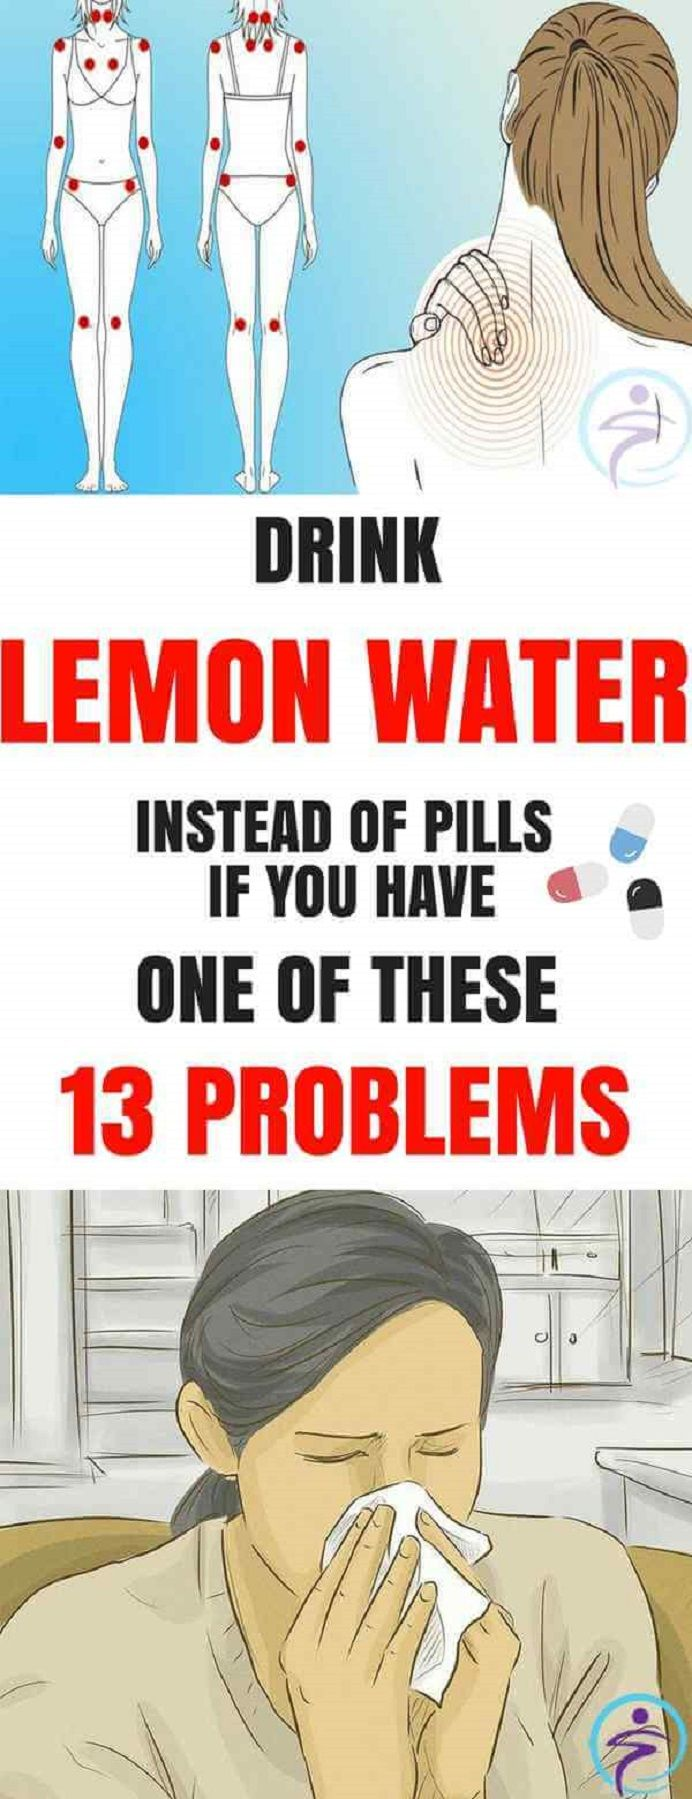 Drink Lemon Water Instead Of Pills If You Have One Of These 13 Problems #DrinkLemonWaterInsteadOfPillsIfYouHaveOneOfThese13Problems